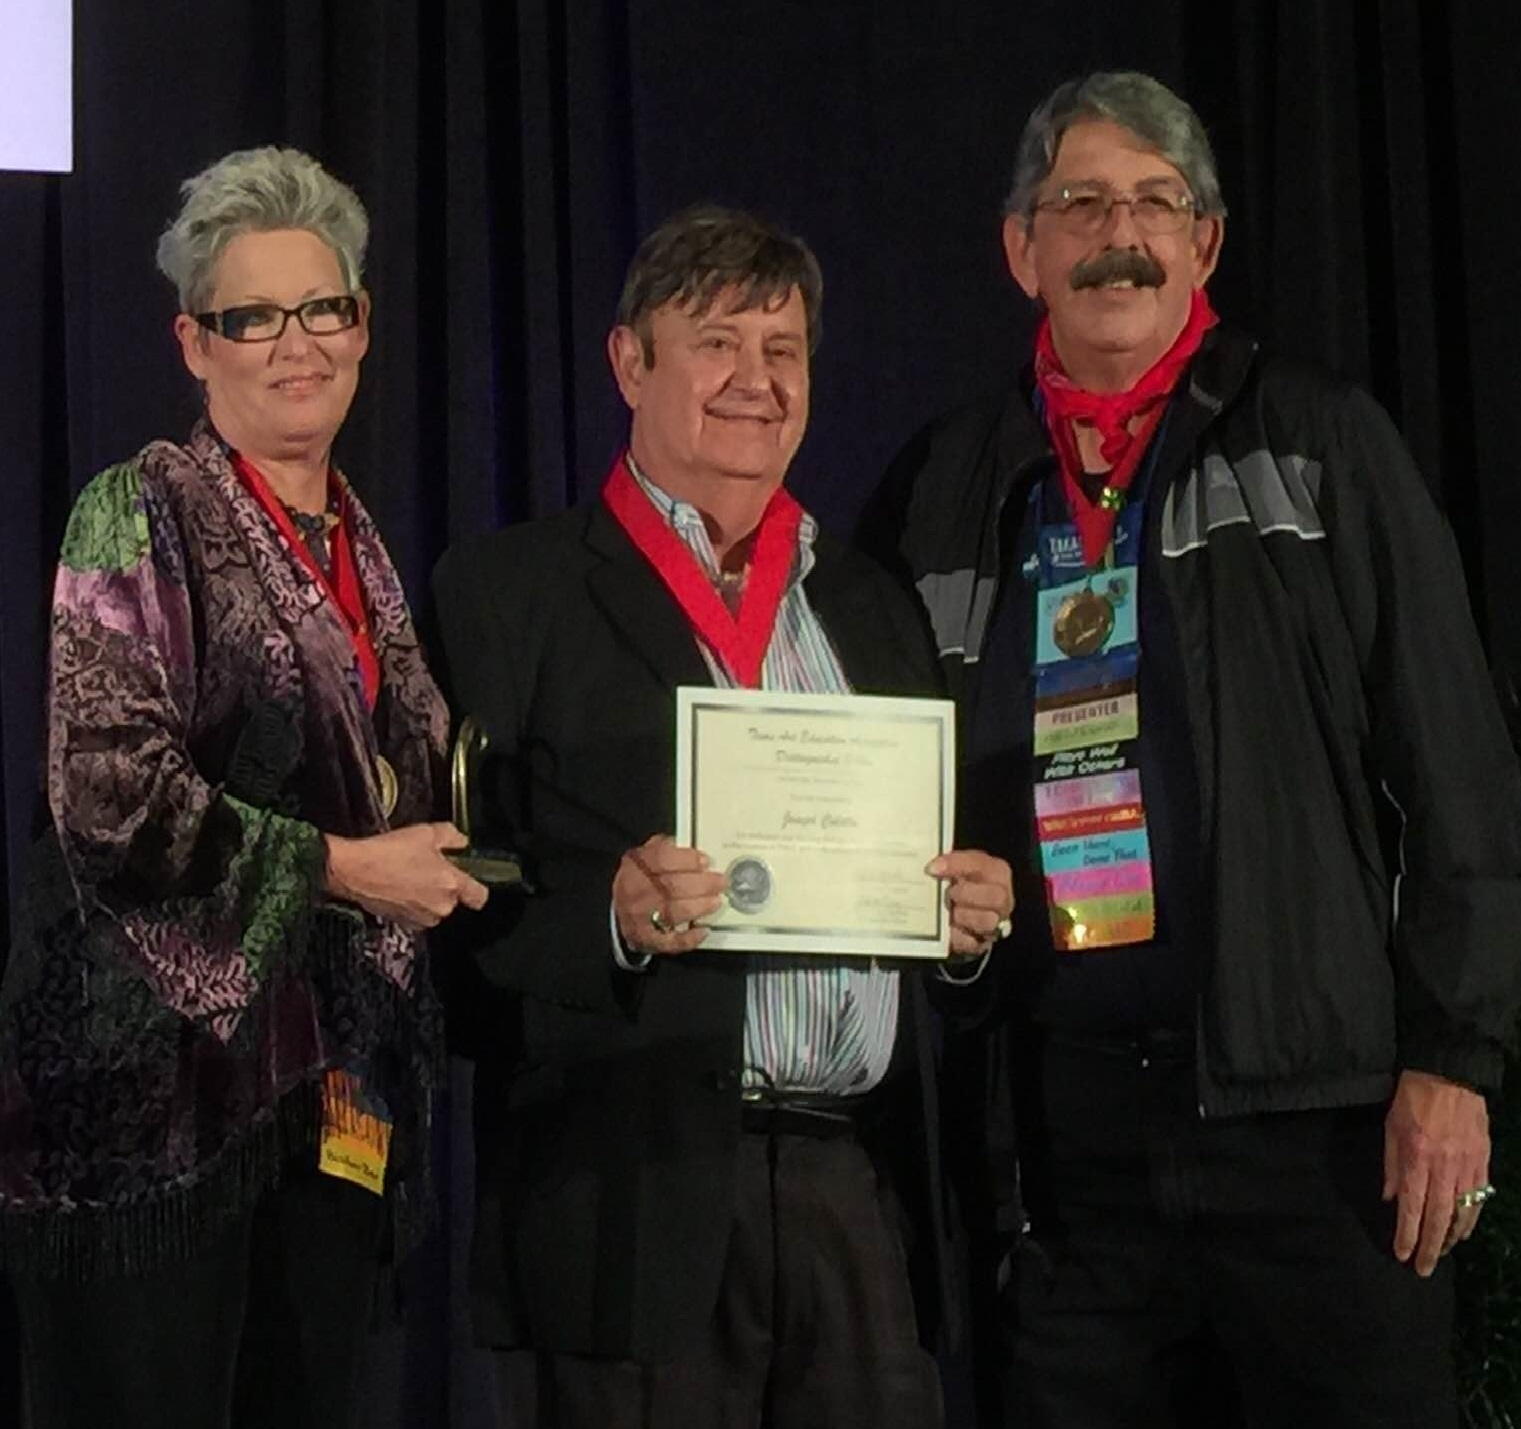 ", ""You Live Forever Through Your Students"" : Artist Joseph Culotta Inducted as Distinguished Fellow of Texas Art Education Association (TAEA)"